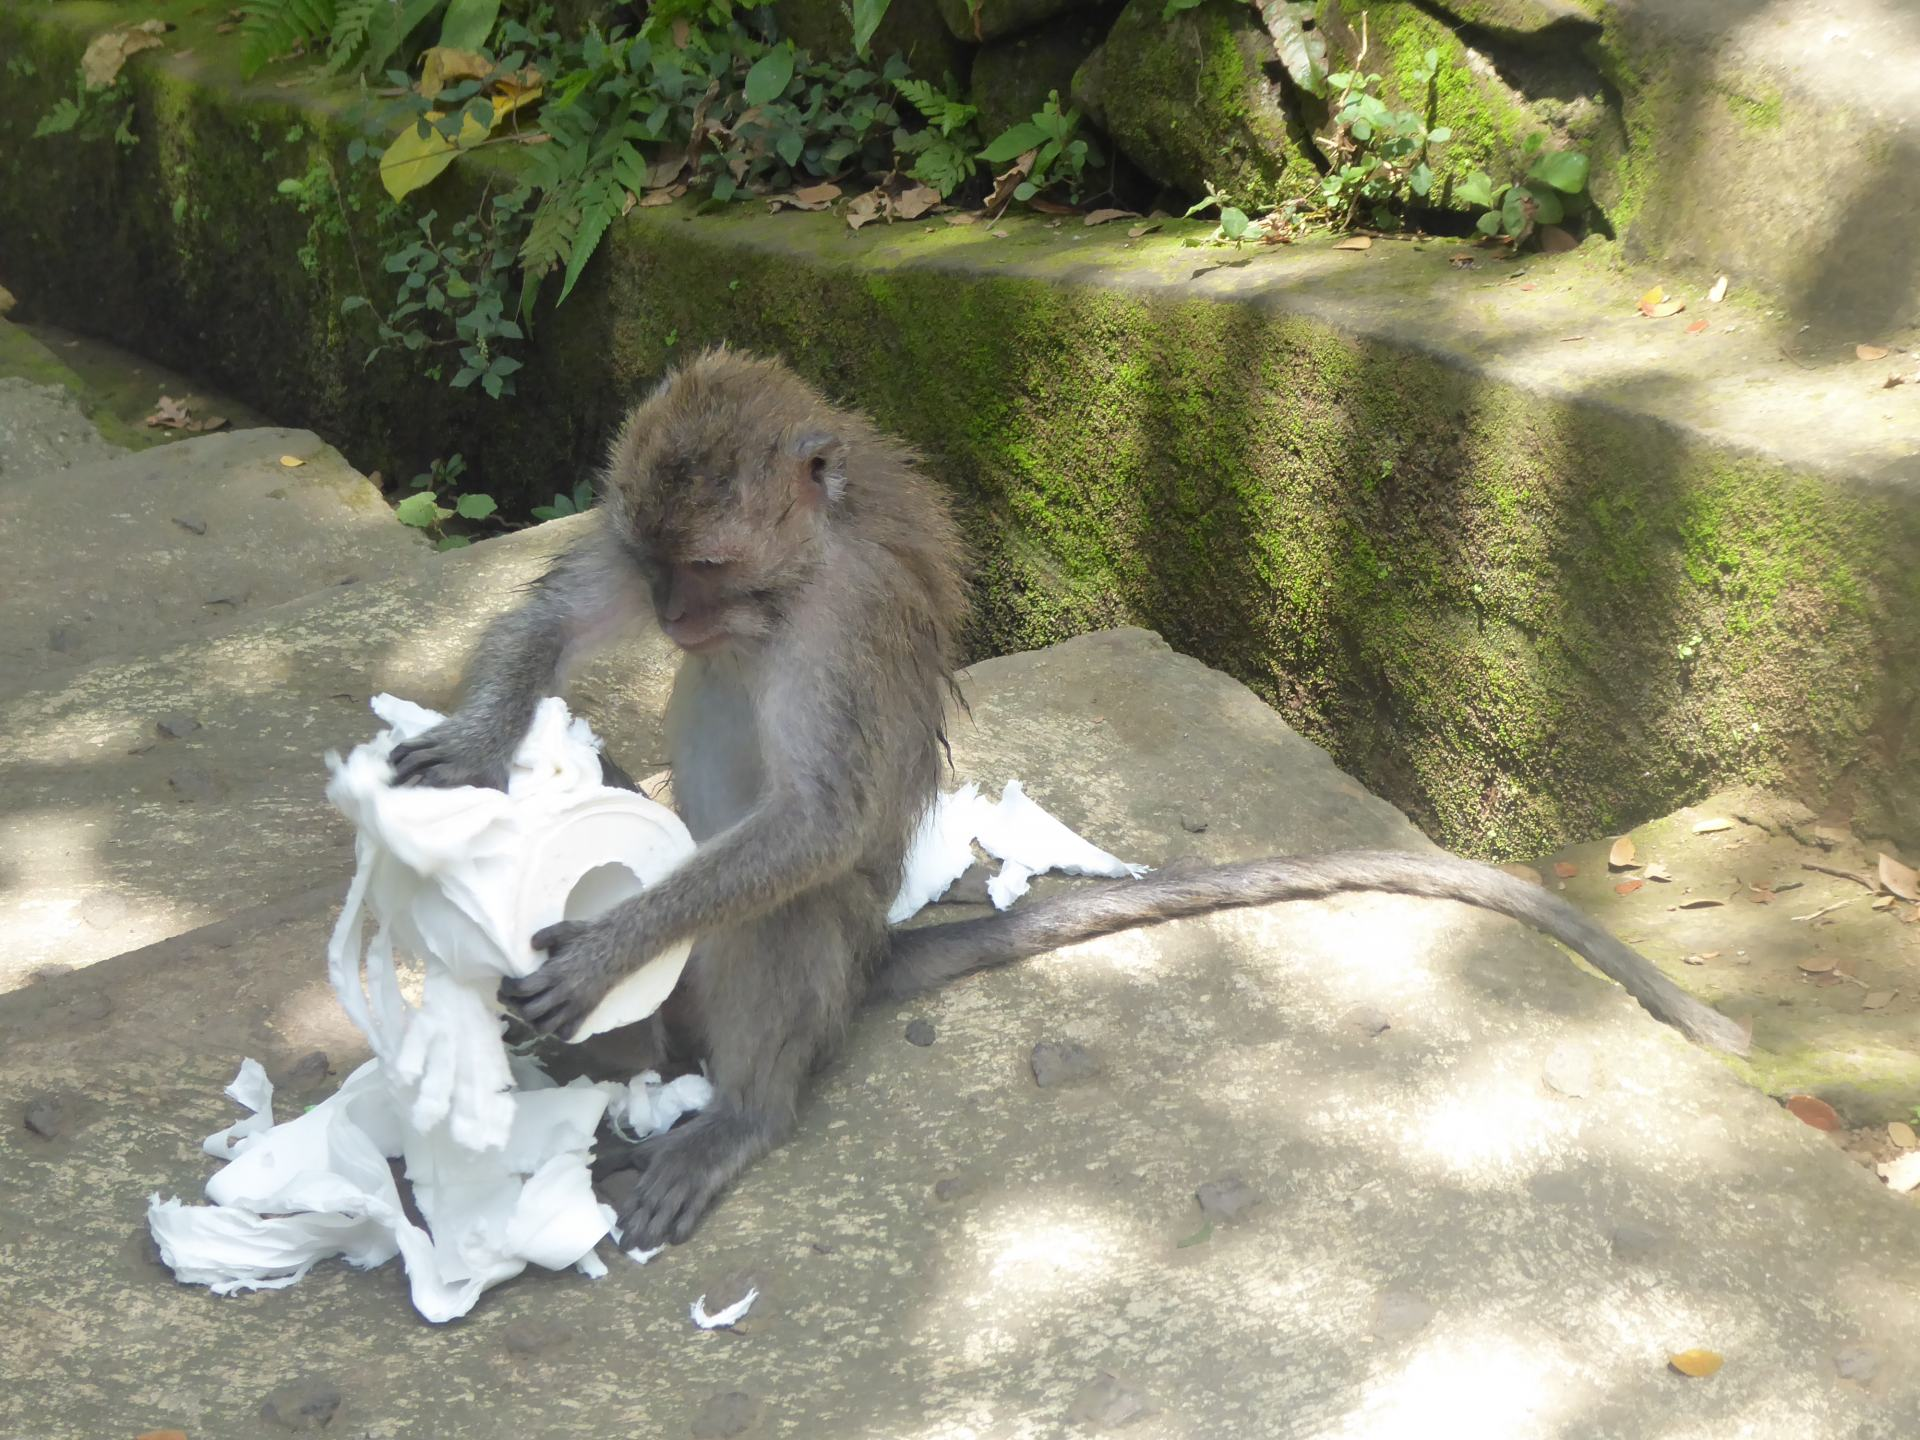 Southeast Asia backpacking tips - beware of monkeys stealing form you. This monkey is ripping up a stolen toilet roll.